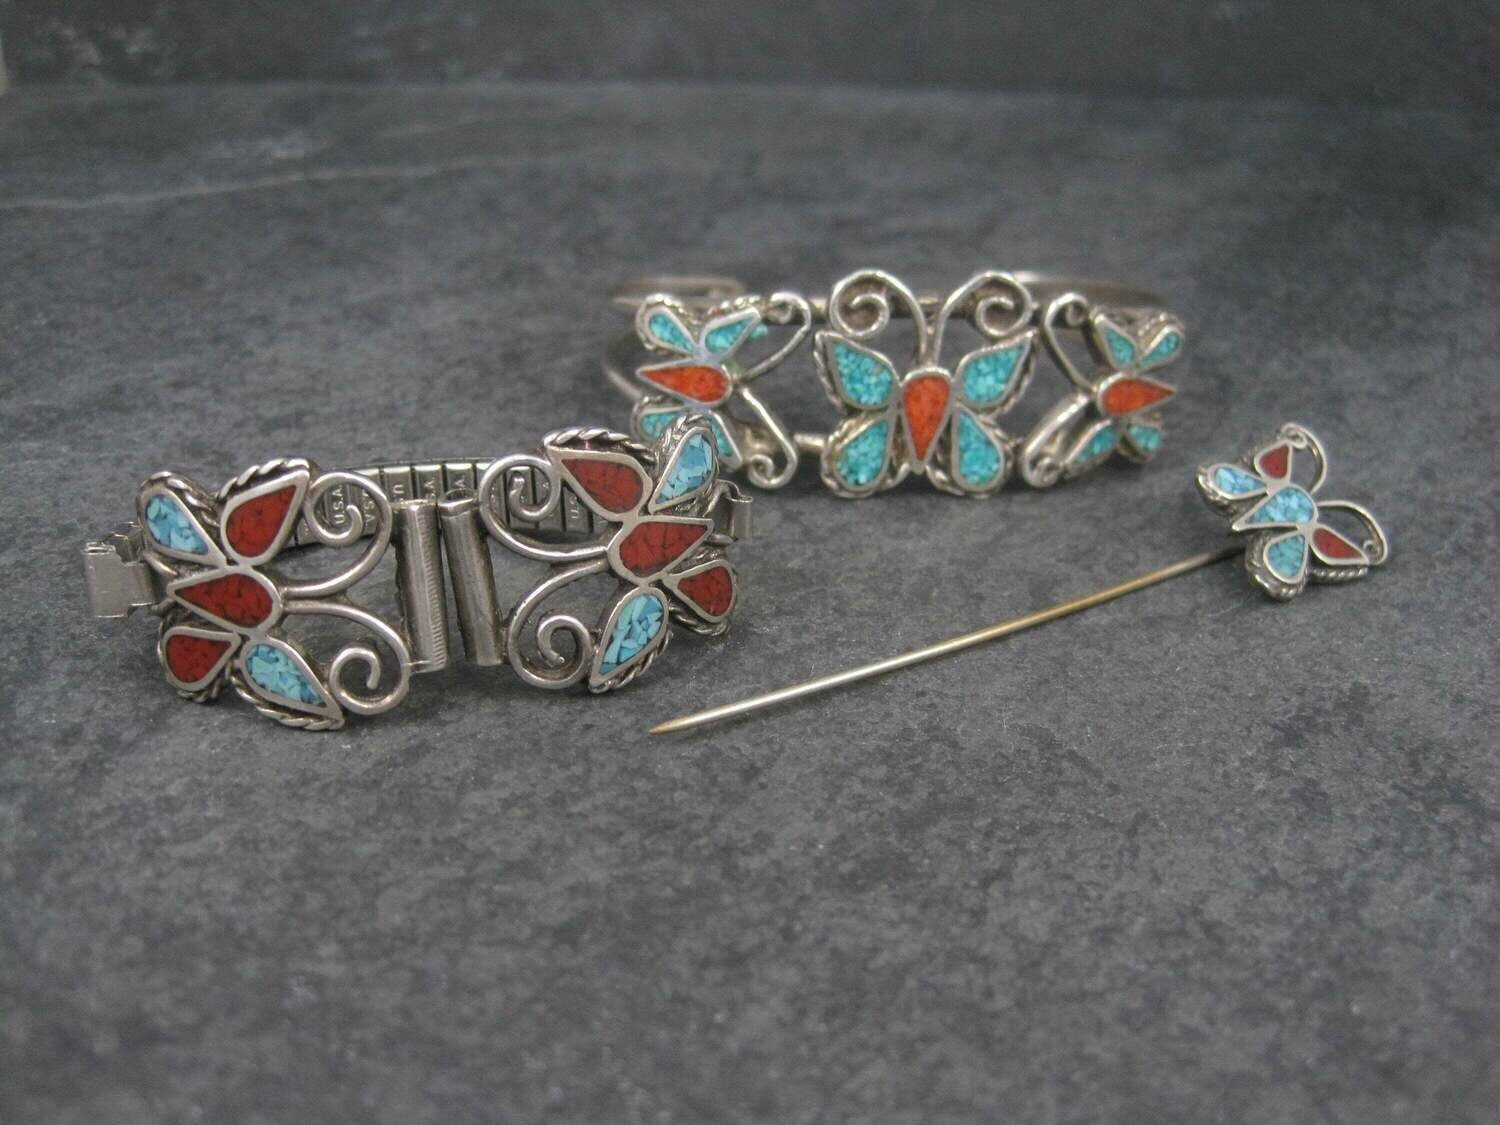 Vintage Southwestern Coral Turquoise Butterfly Jewelry Set Cuff Bracelet Stick Pin Watch Band